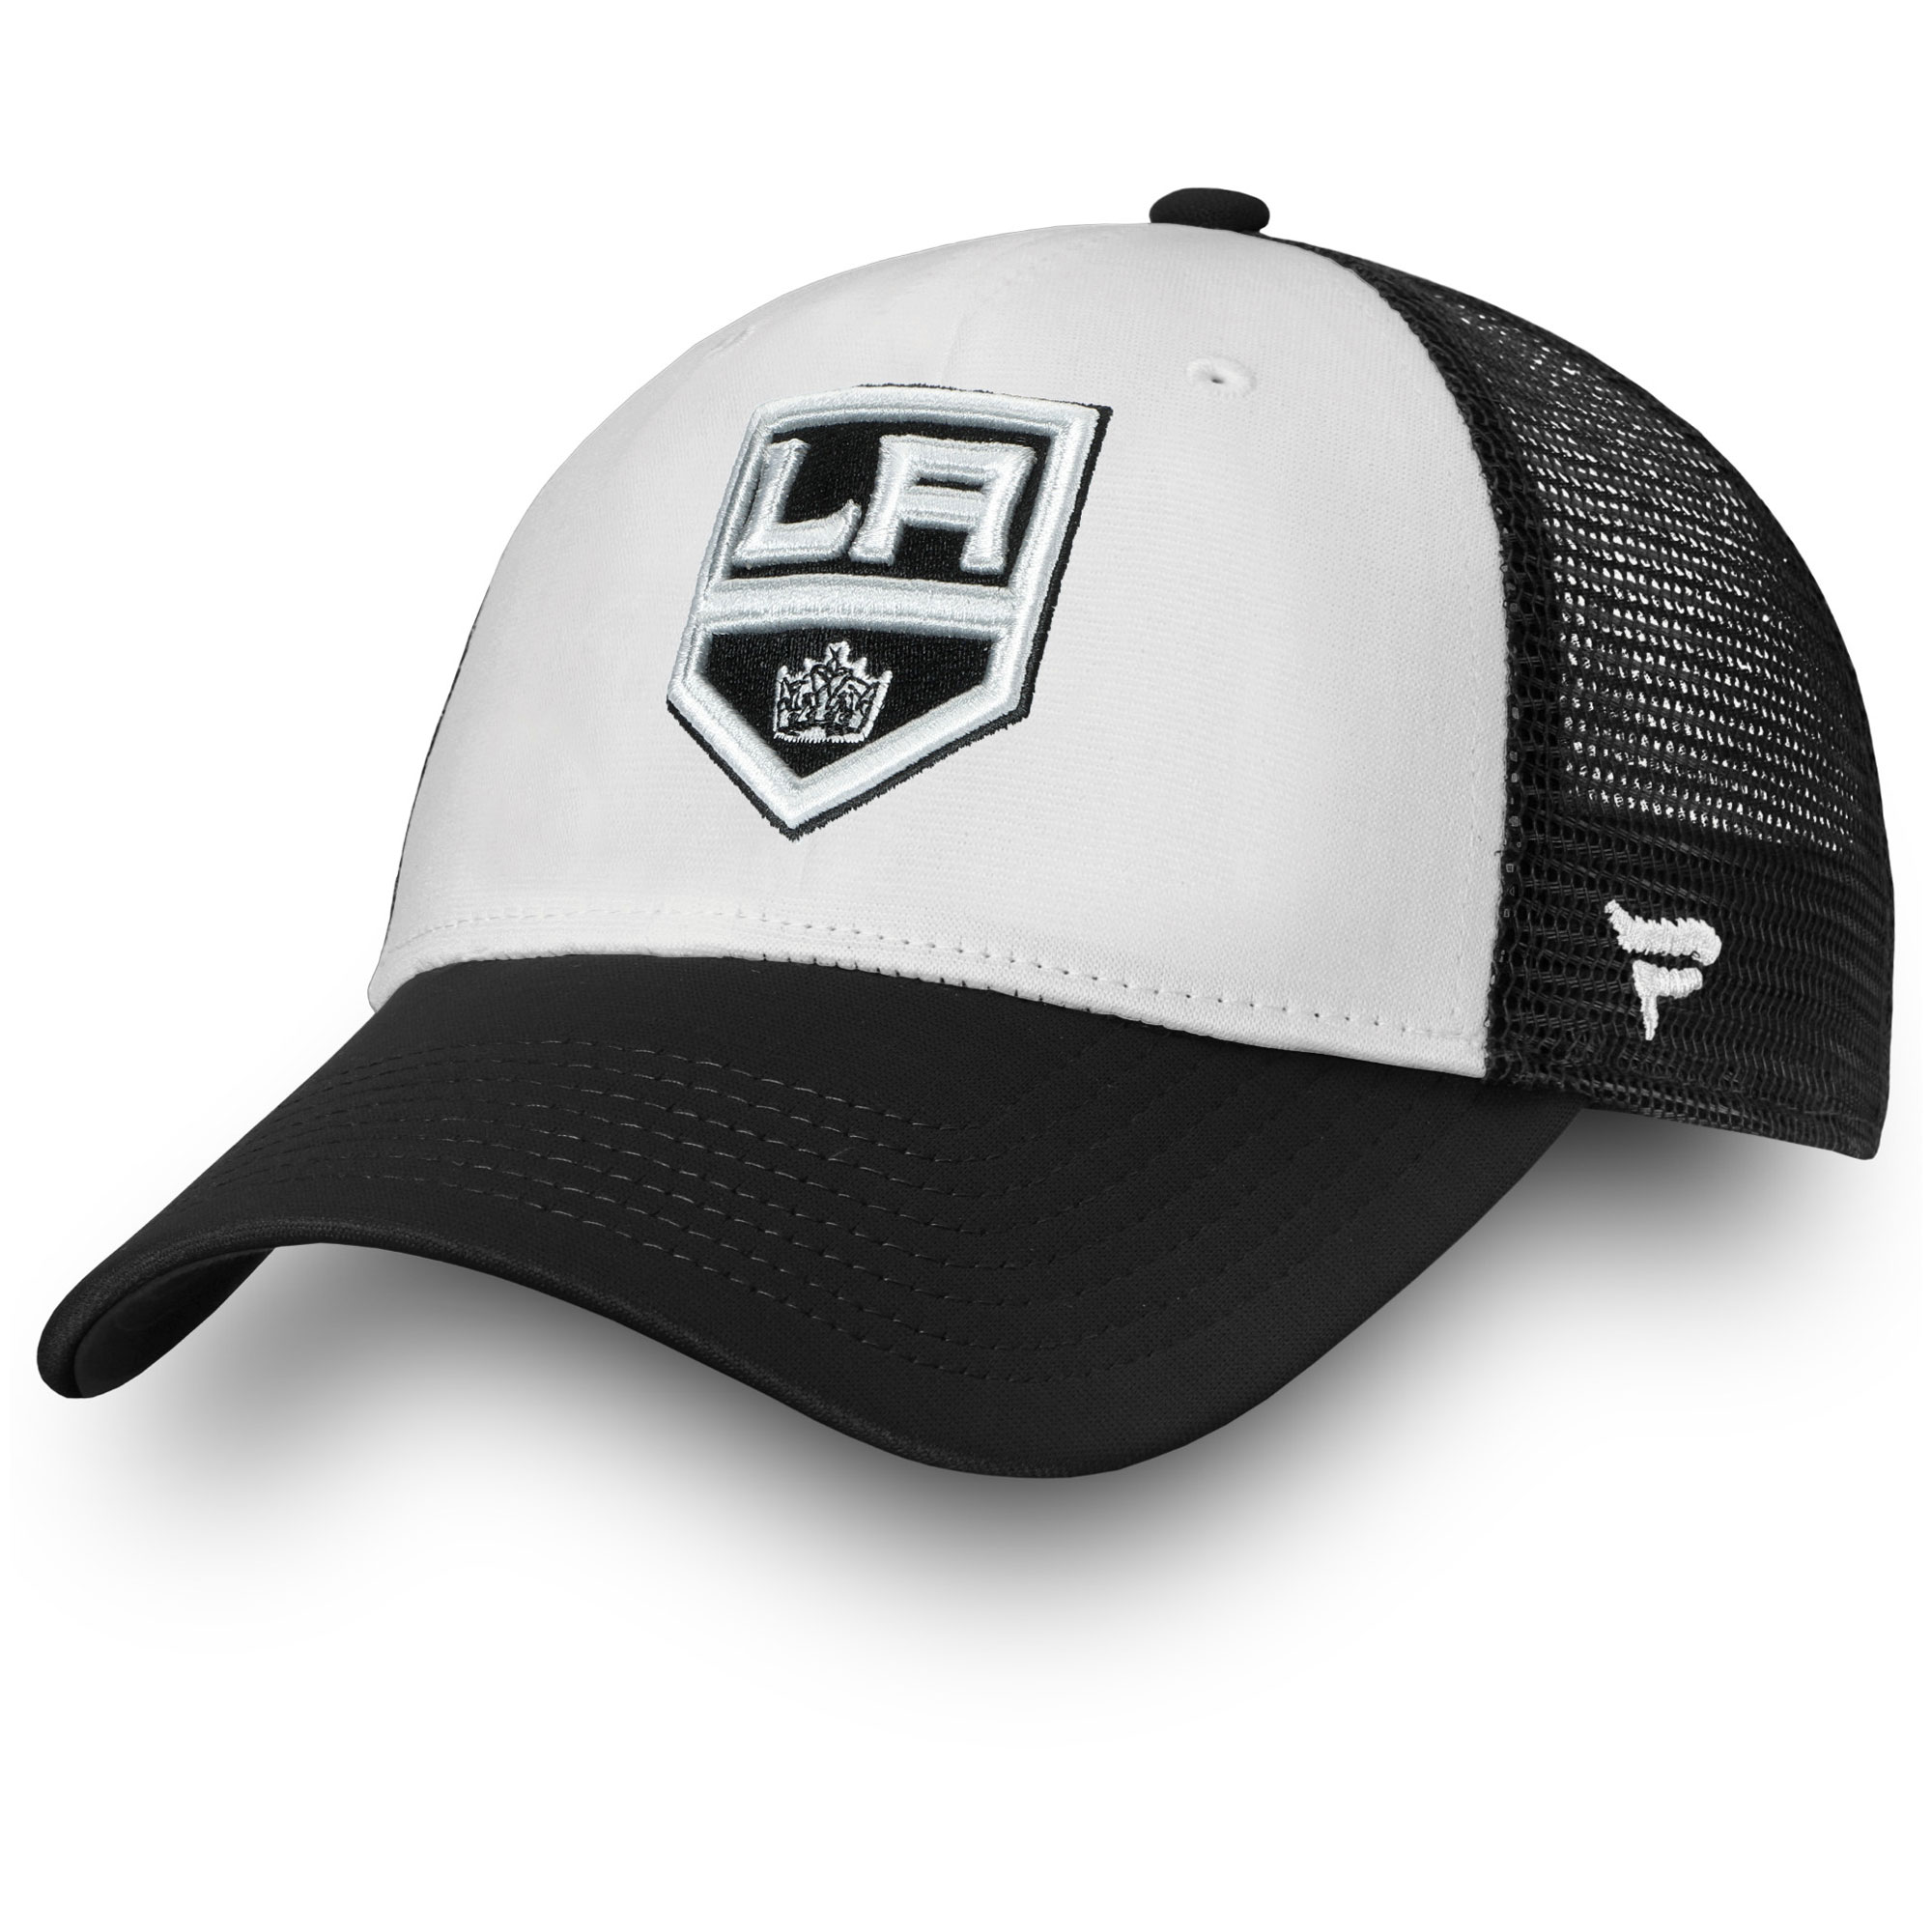 new product b1c94 65728 ... official store los angeles kings fanatics branded depth trucker adjustable  hat white osfa 5c0d2 e9516